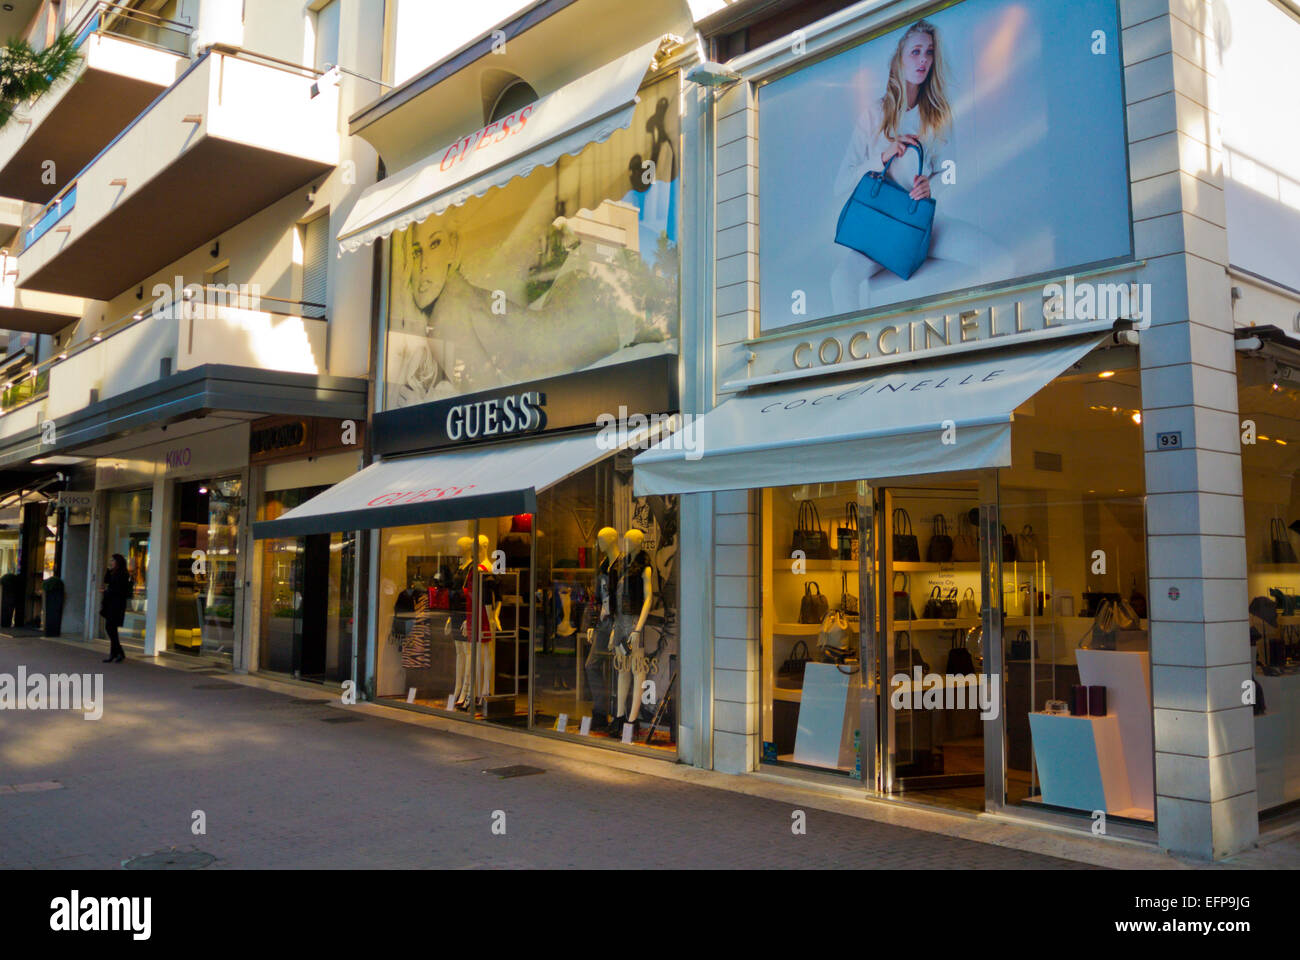 Shops, Riccione, resort near Rimini, Emilia Romagna region, central ...